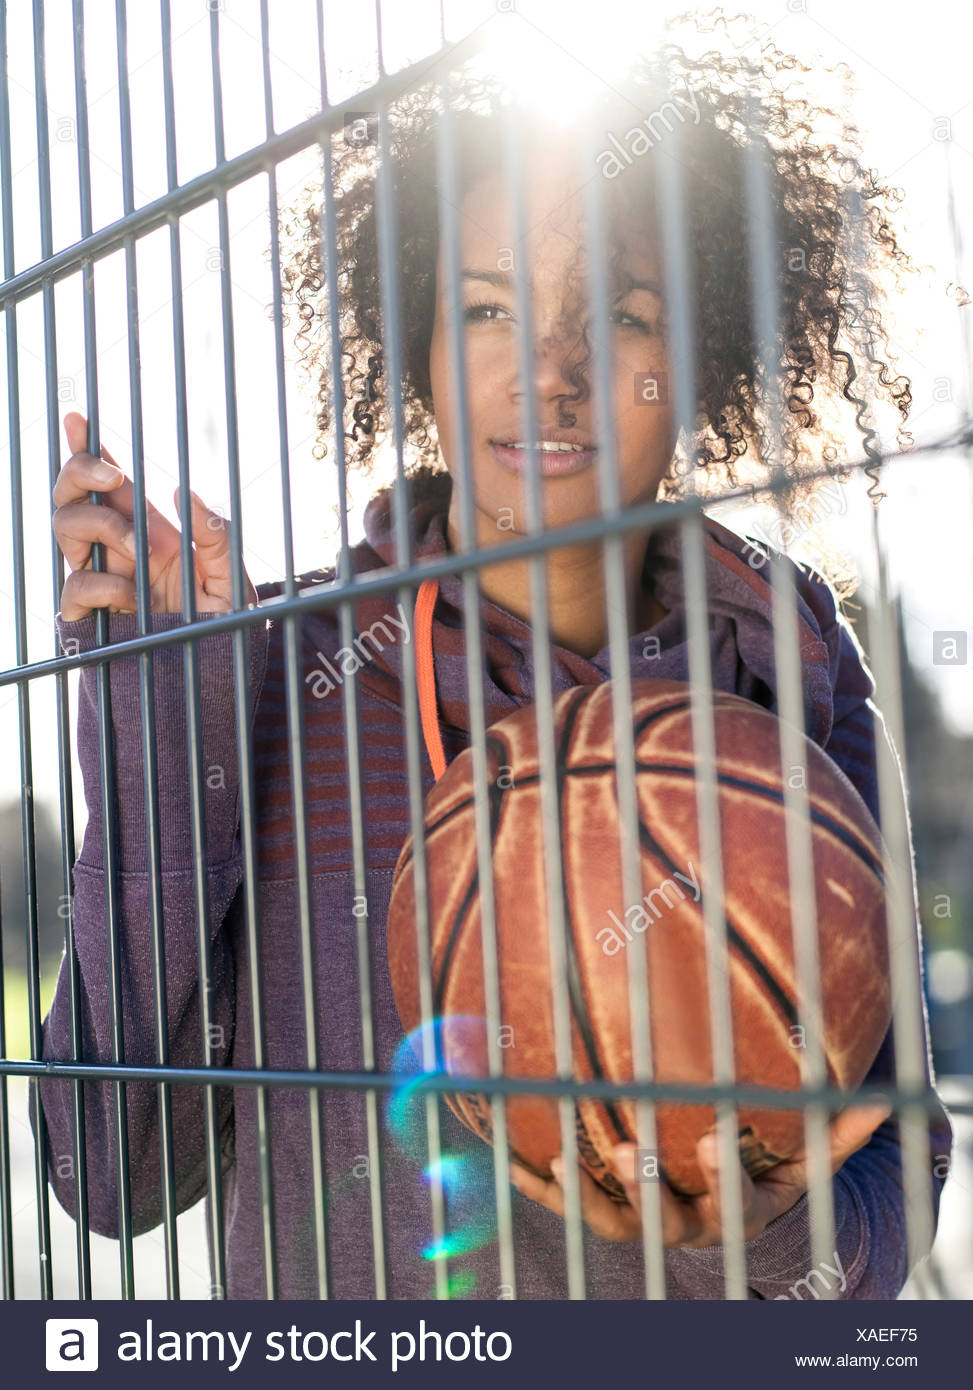 Portrait of young woman with basketball standing behind a fence - Stock Image